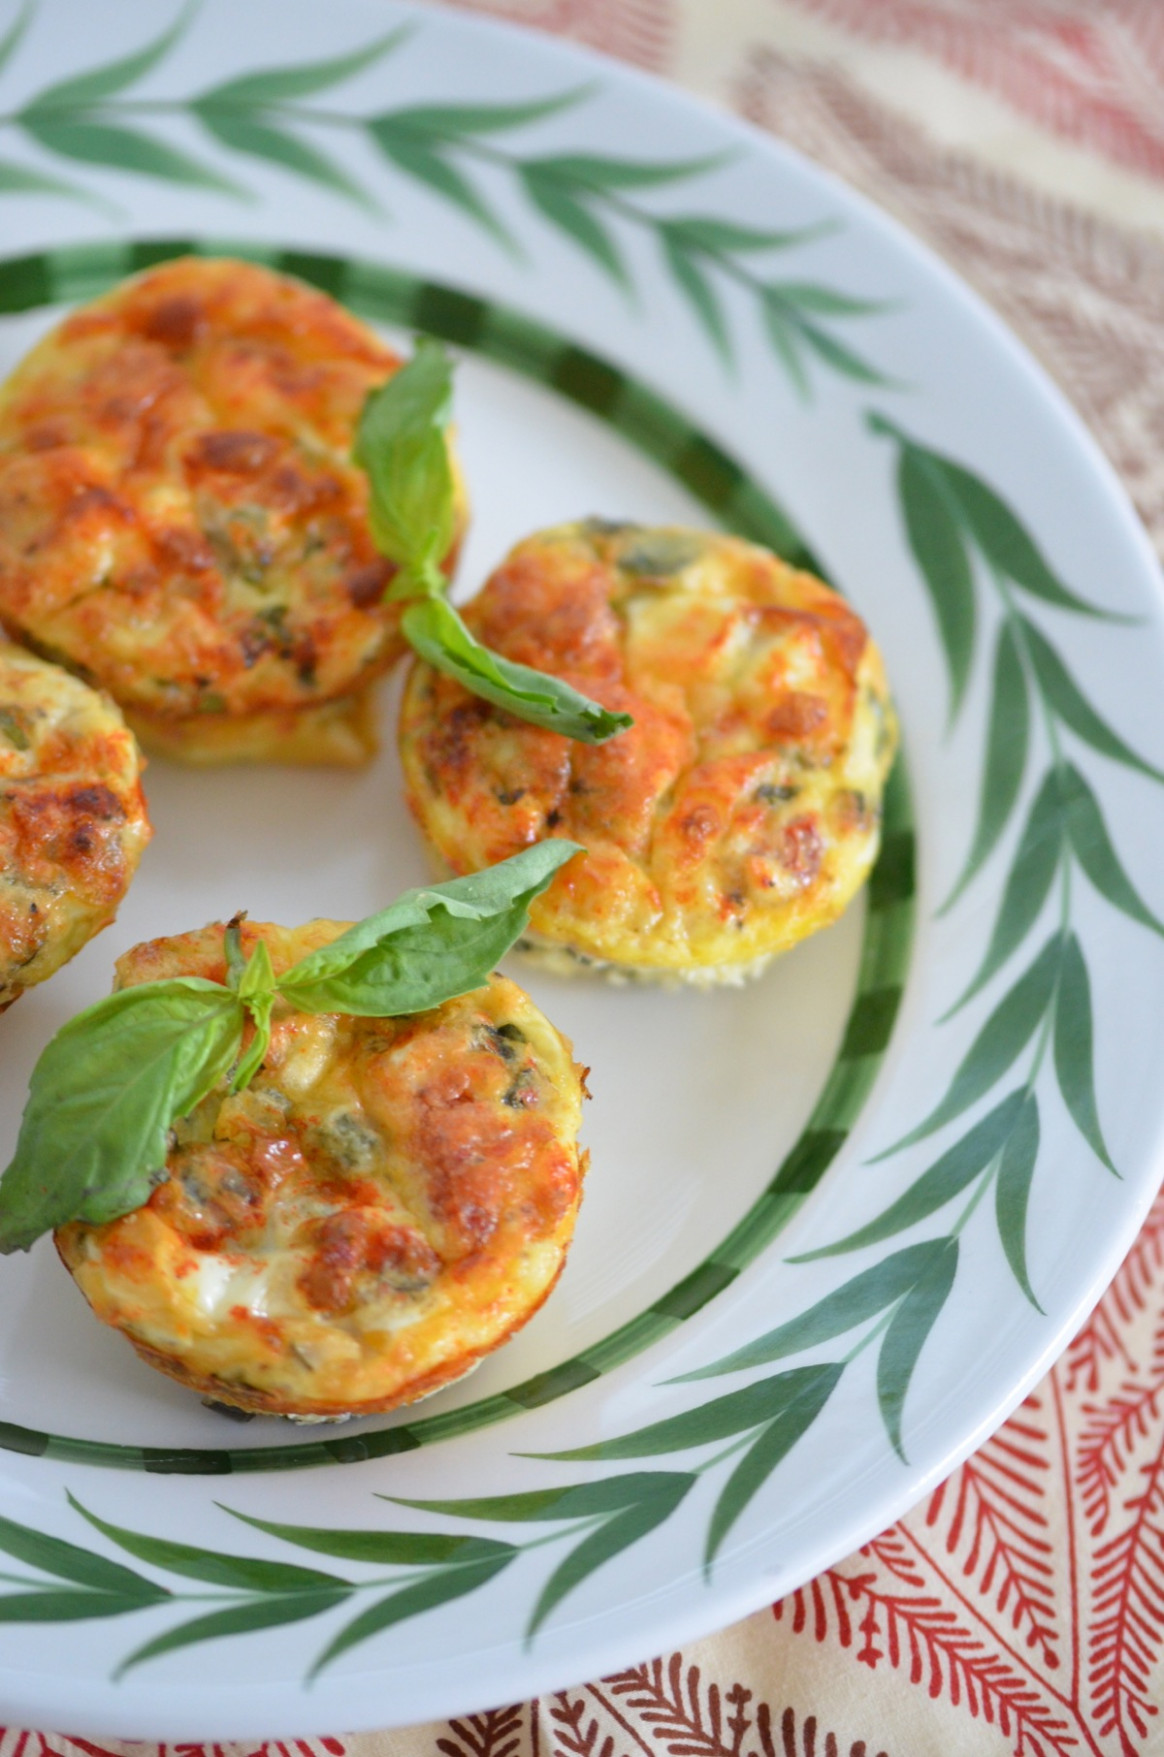 Light Whites & An Italian Frittata » The Dinnervine